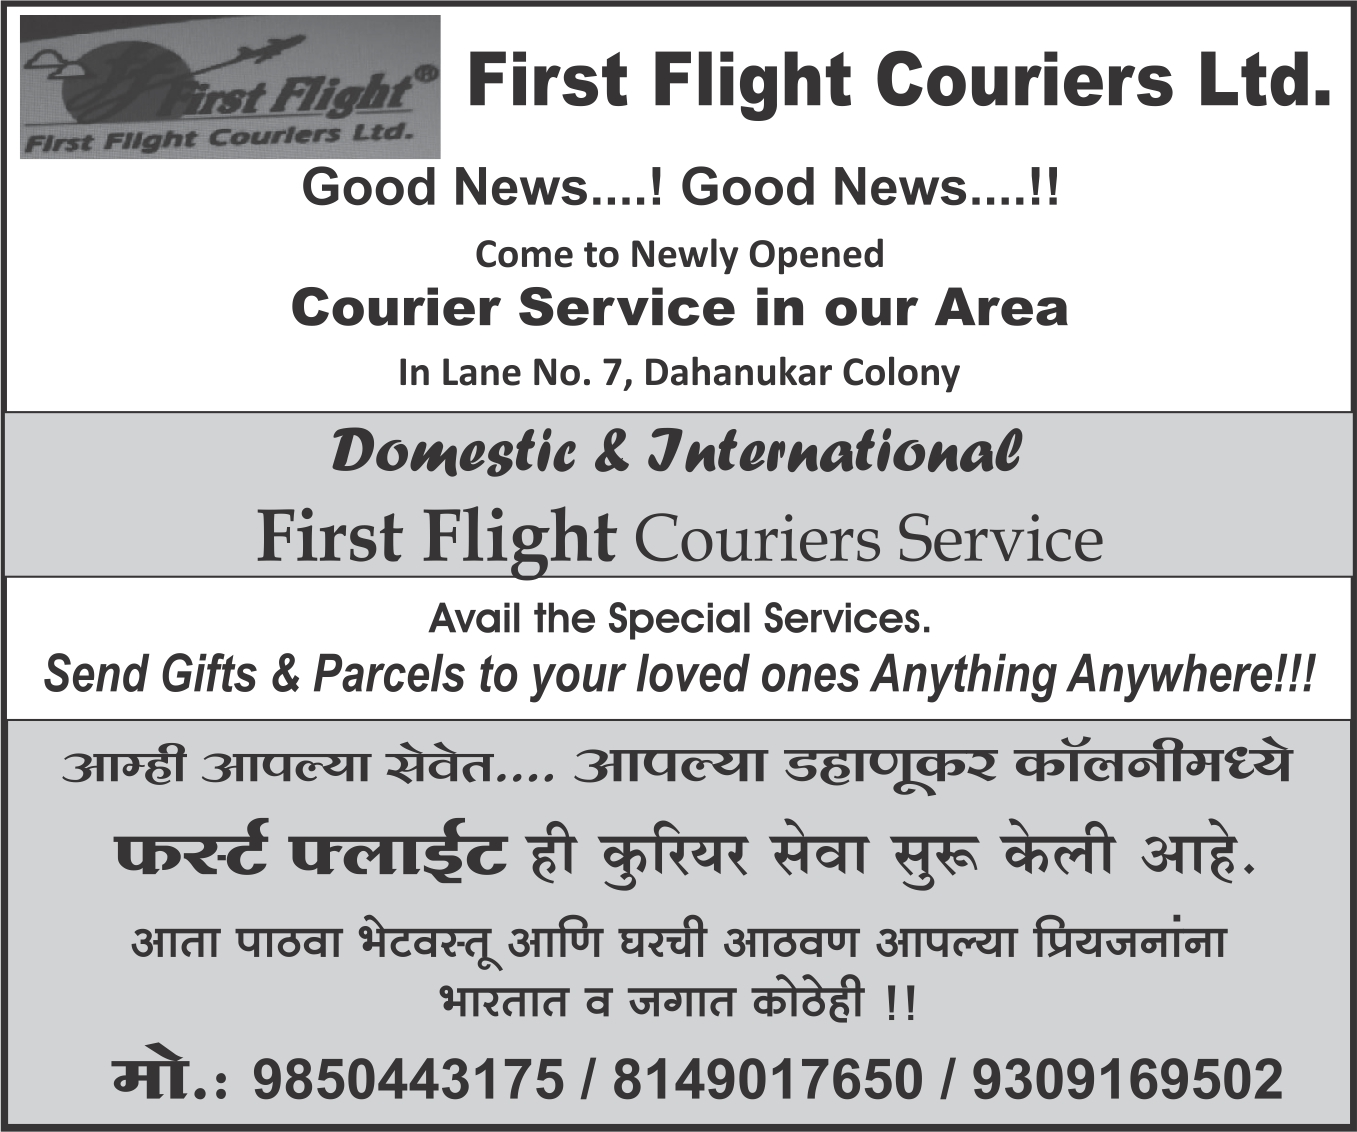 First flight couriers ltd. banner